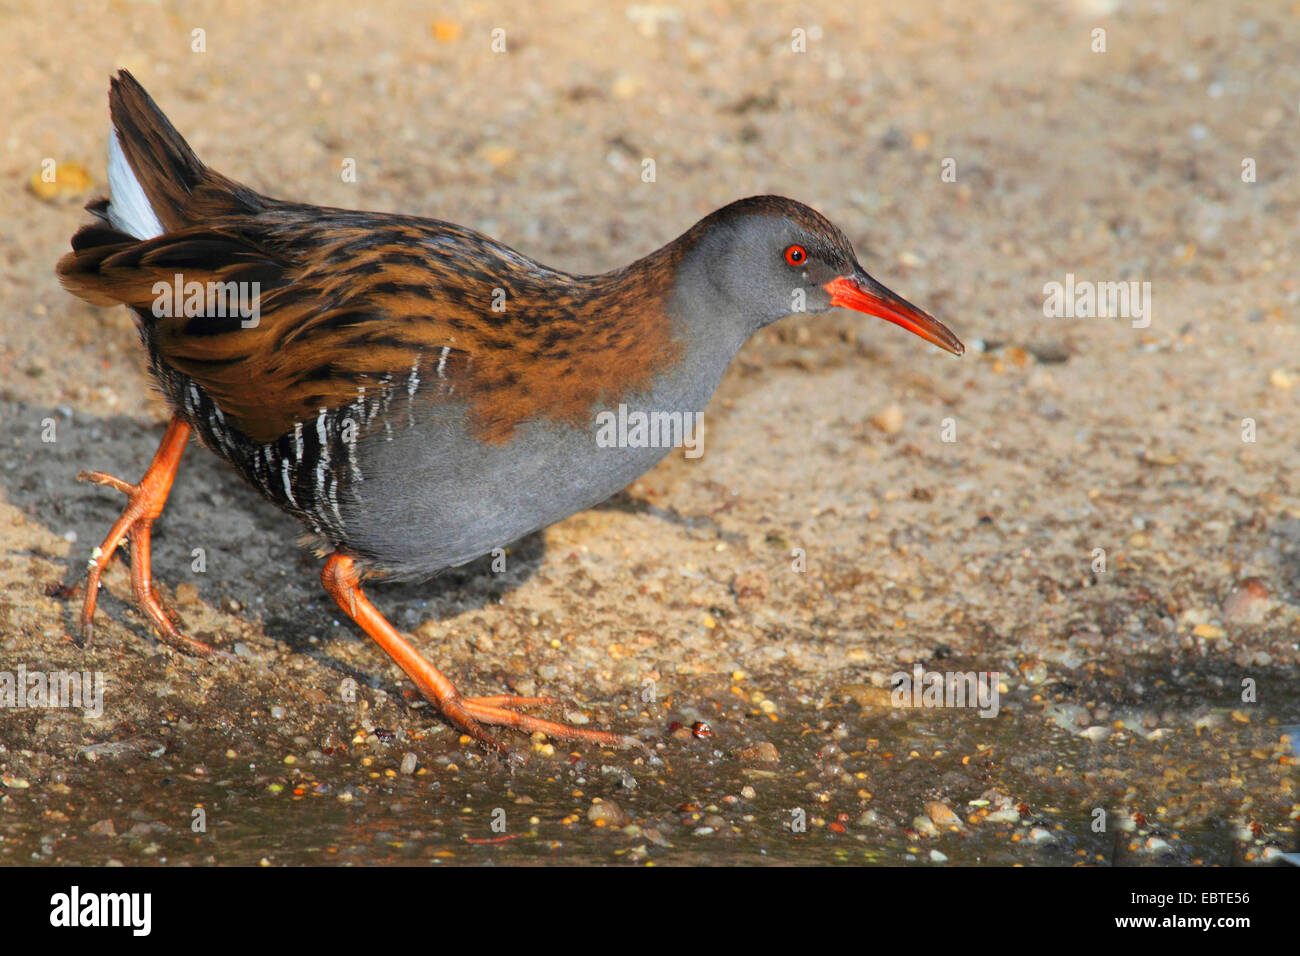 water rail (Rallus aquaticus), walking at the sand shore of a water, Germany - Stock Image